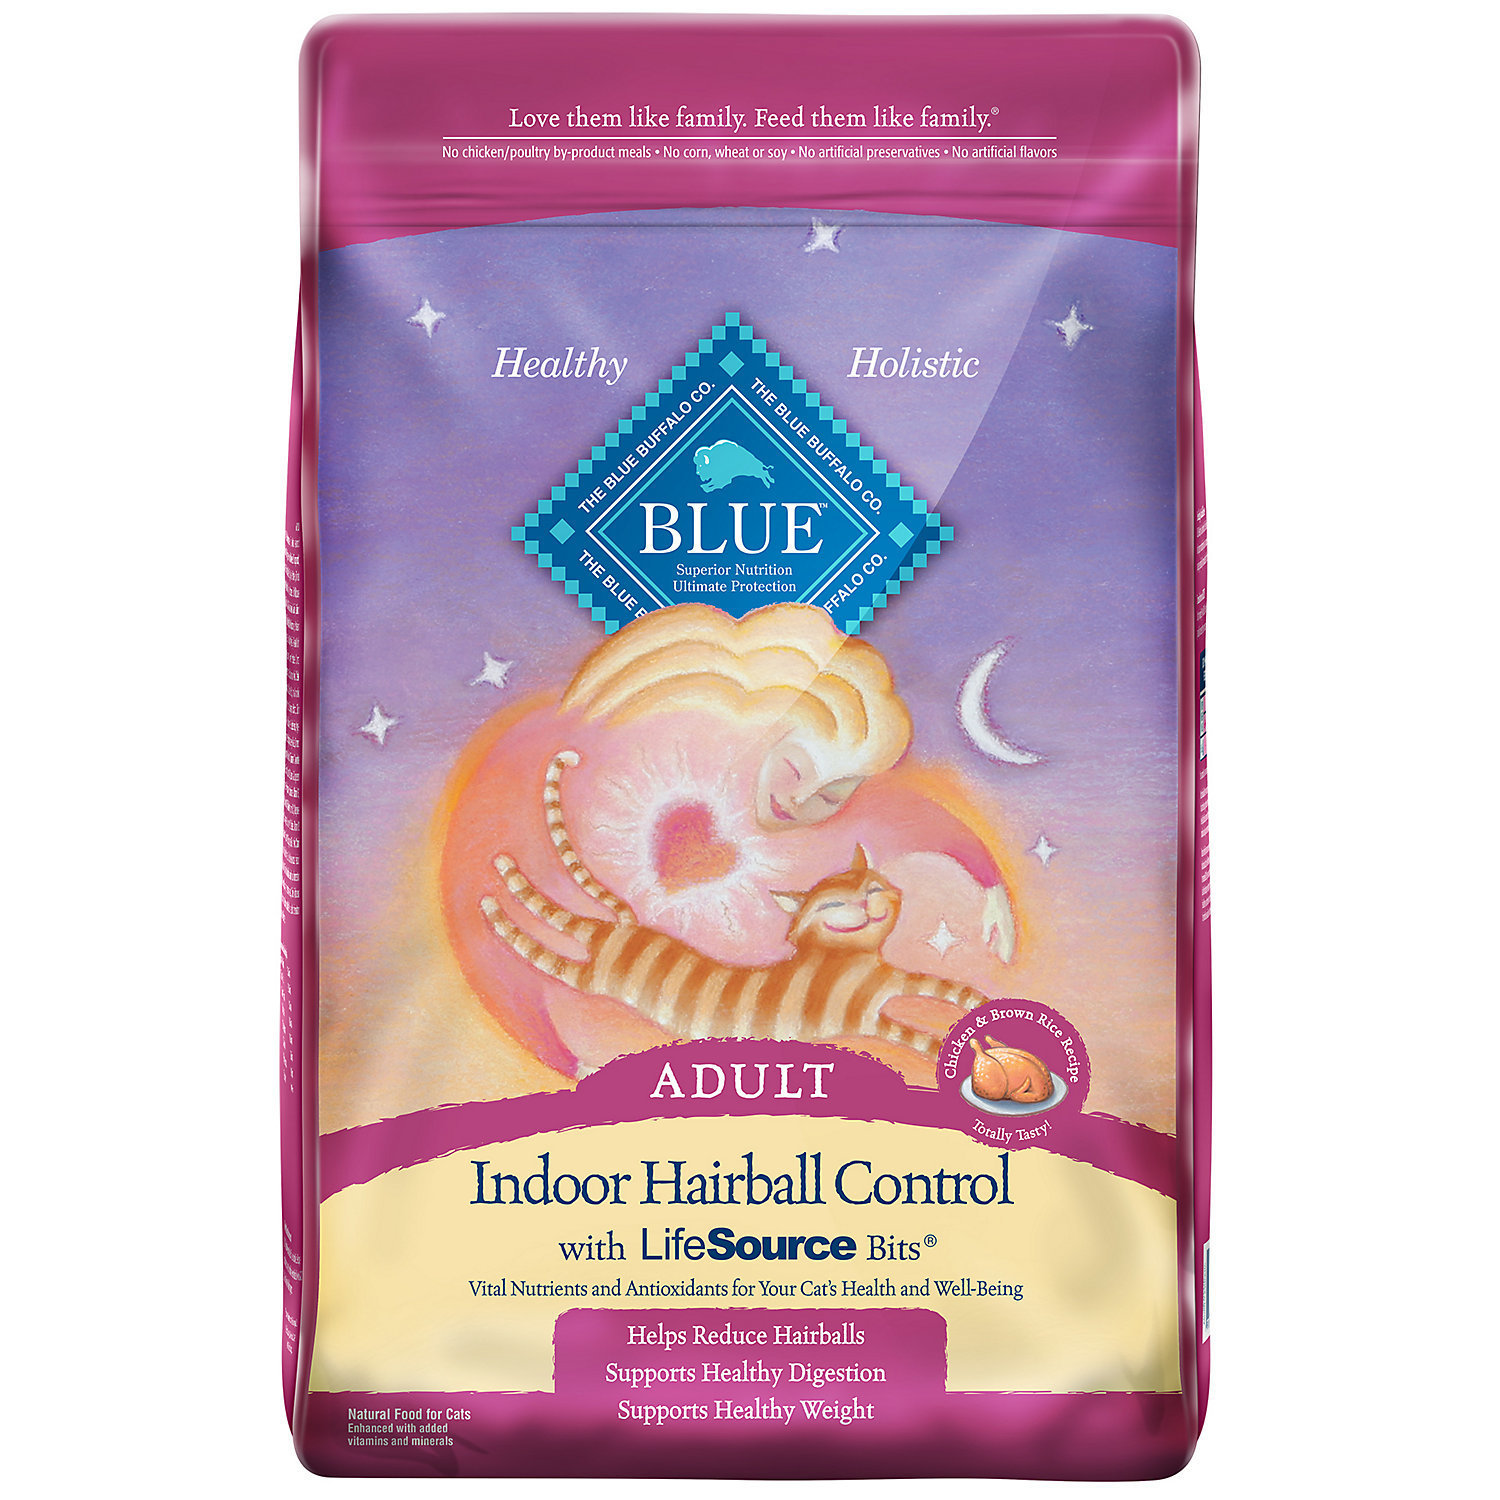 Blue Buffalo Indoor Hairball Control Chicken & Brown Rice Adult Cat Food, 15 lbs (9/18) (A.P3)